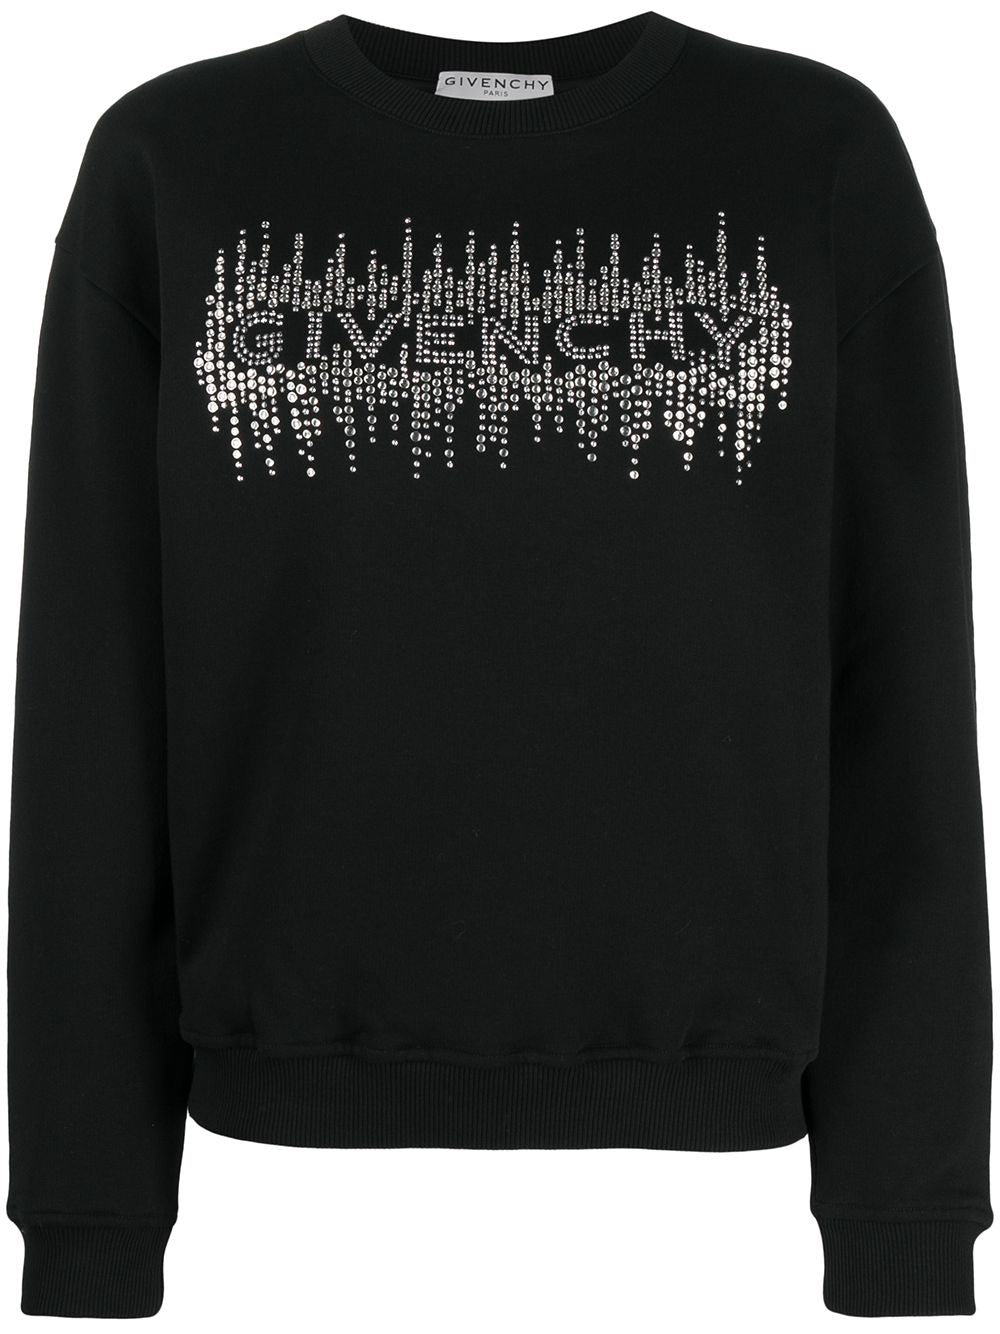 Crystal-Embellished Logo Sweatshirt